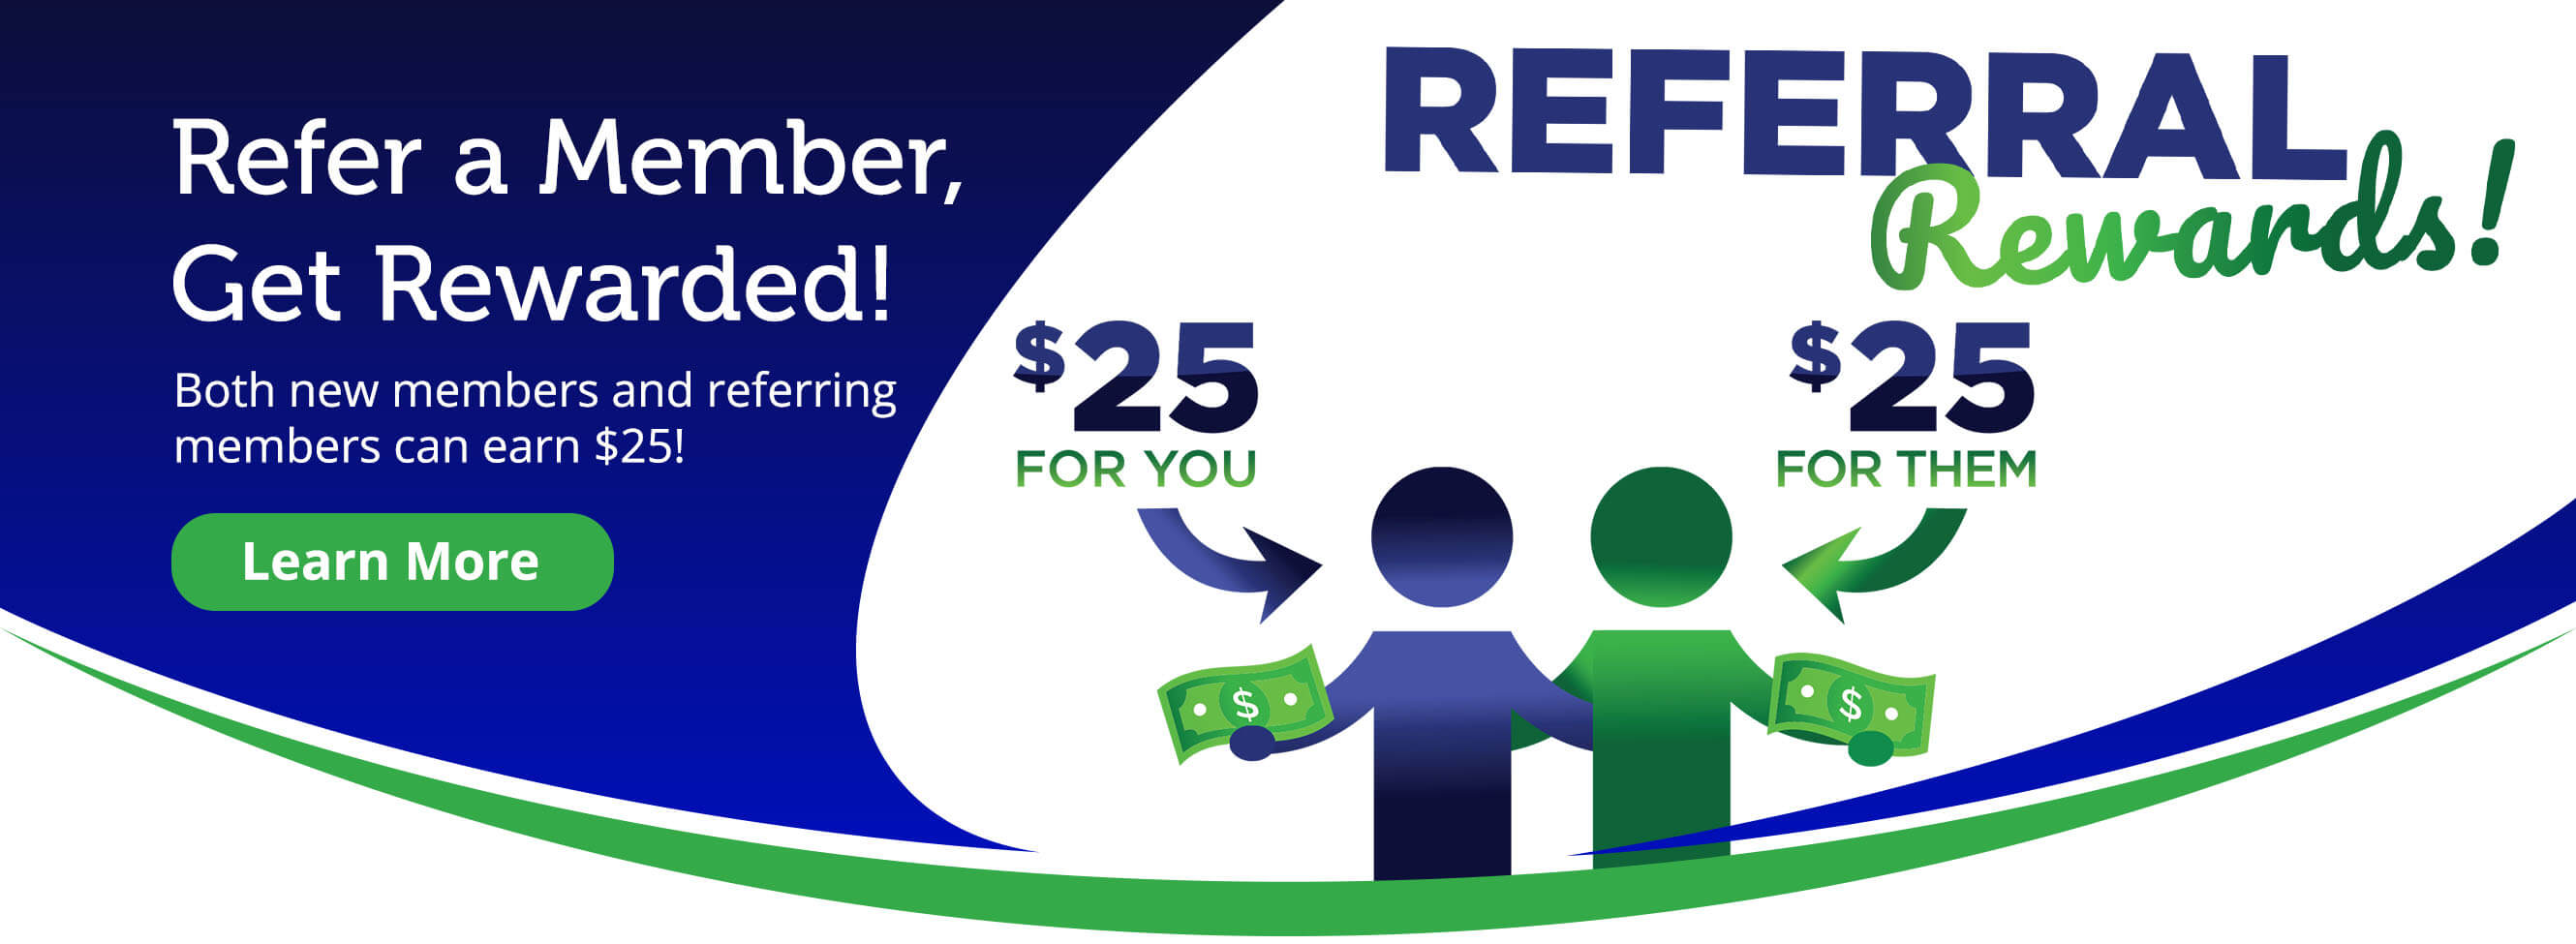 Refer a member to GECU!